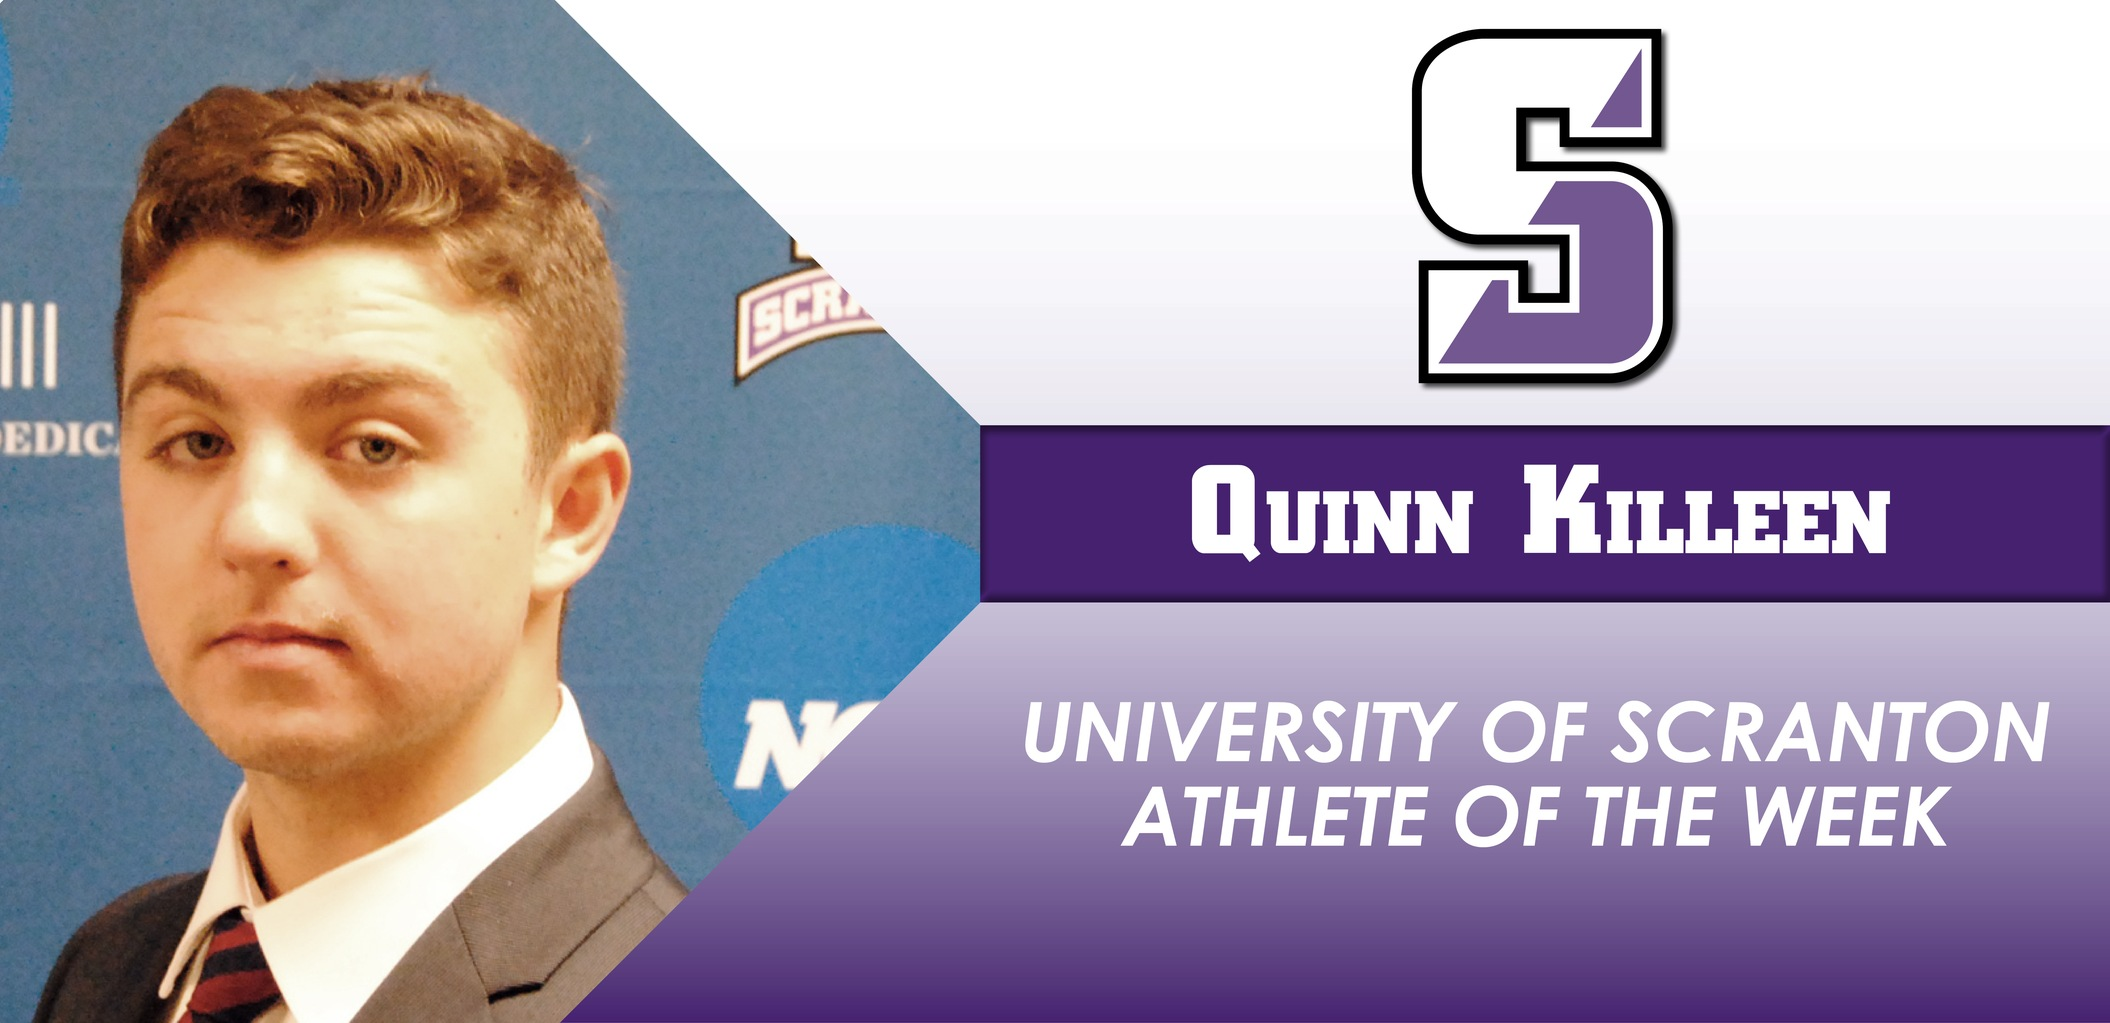 Killeen Named University of Scranton Athlete Of The Week